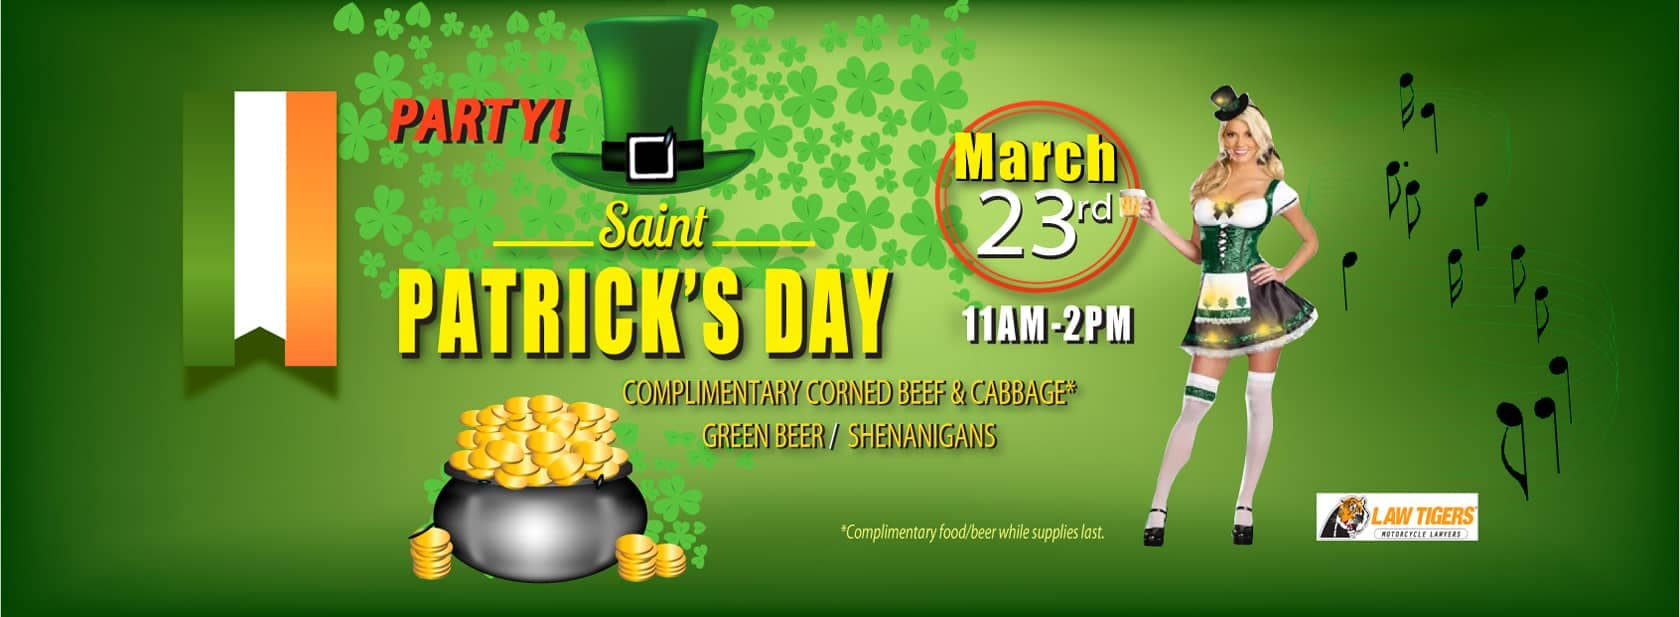 Join the Shenanigans at Our St. Patrick's Day Party